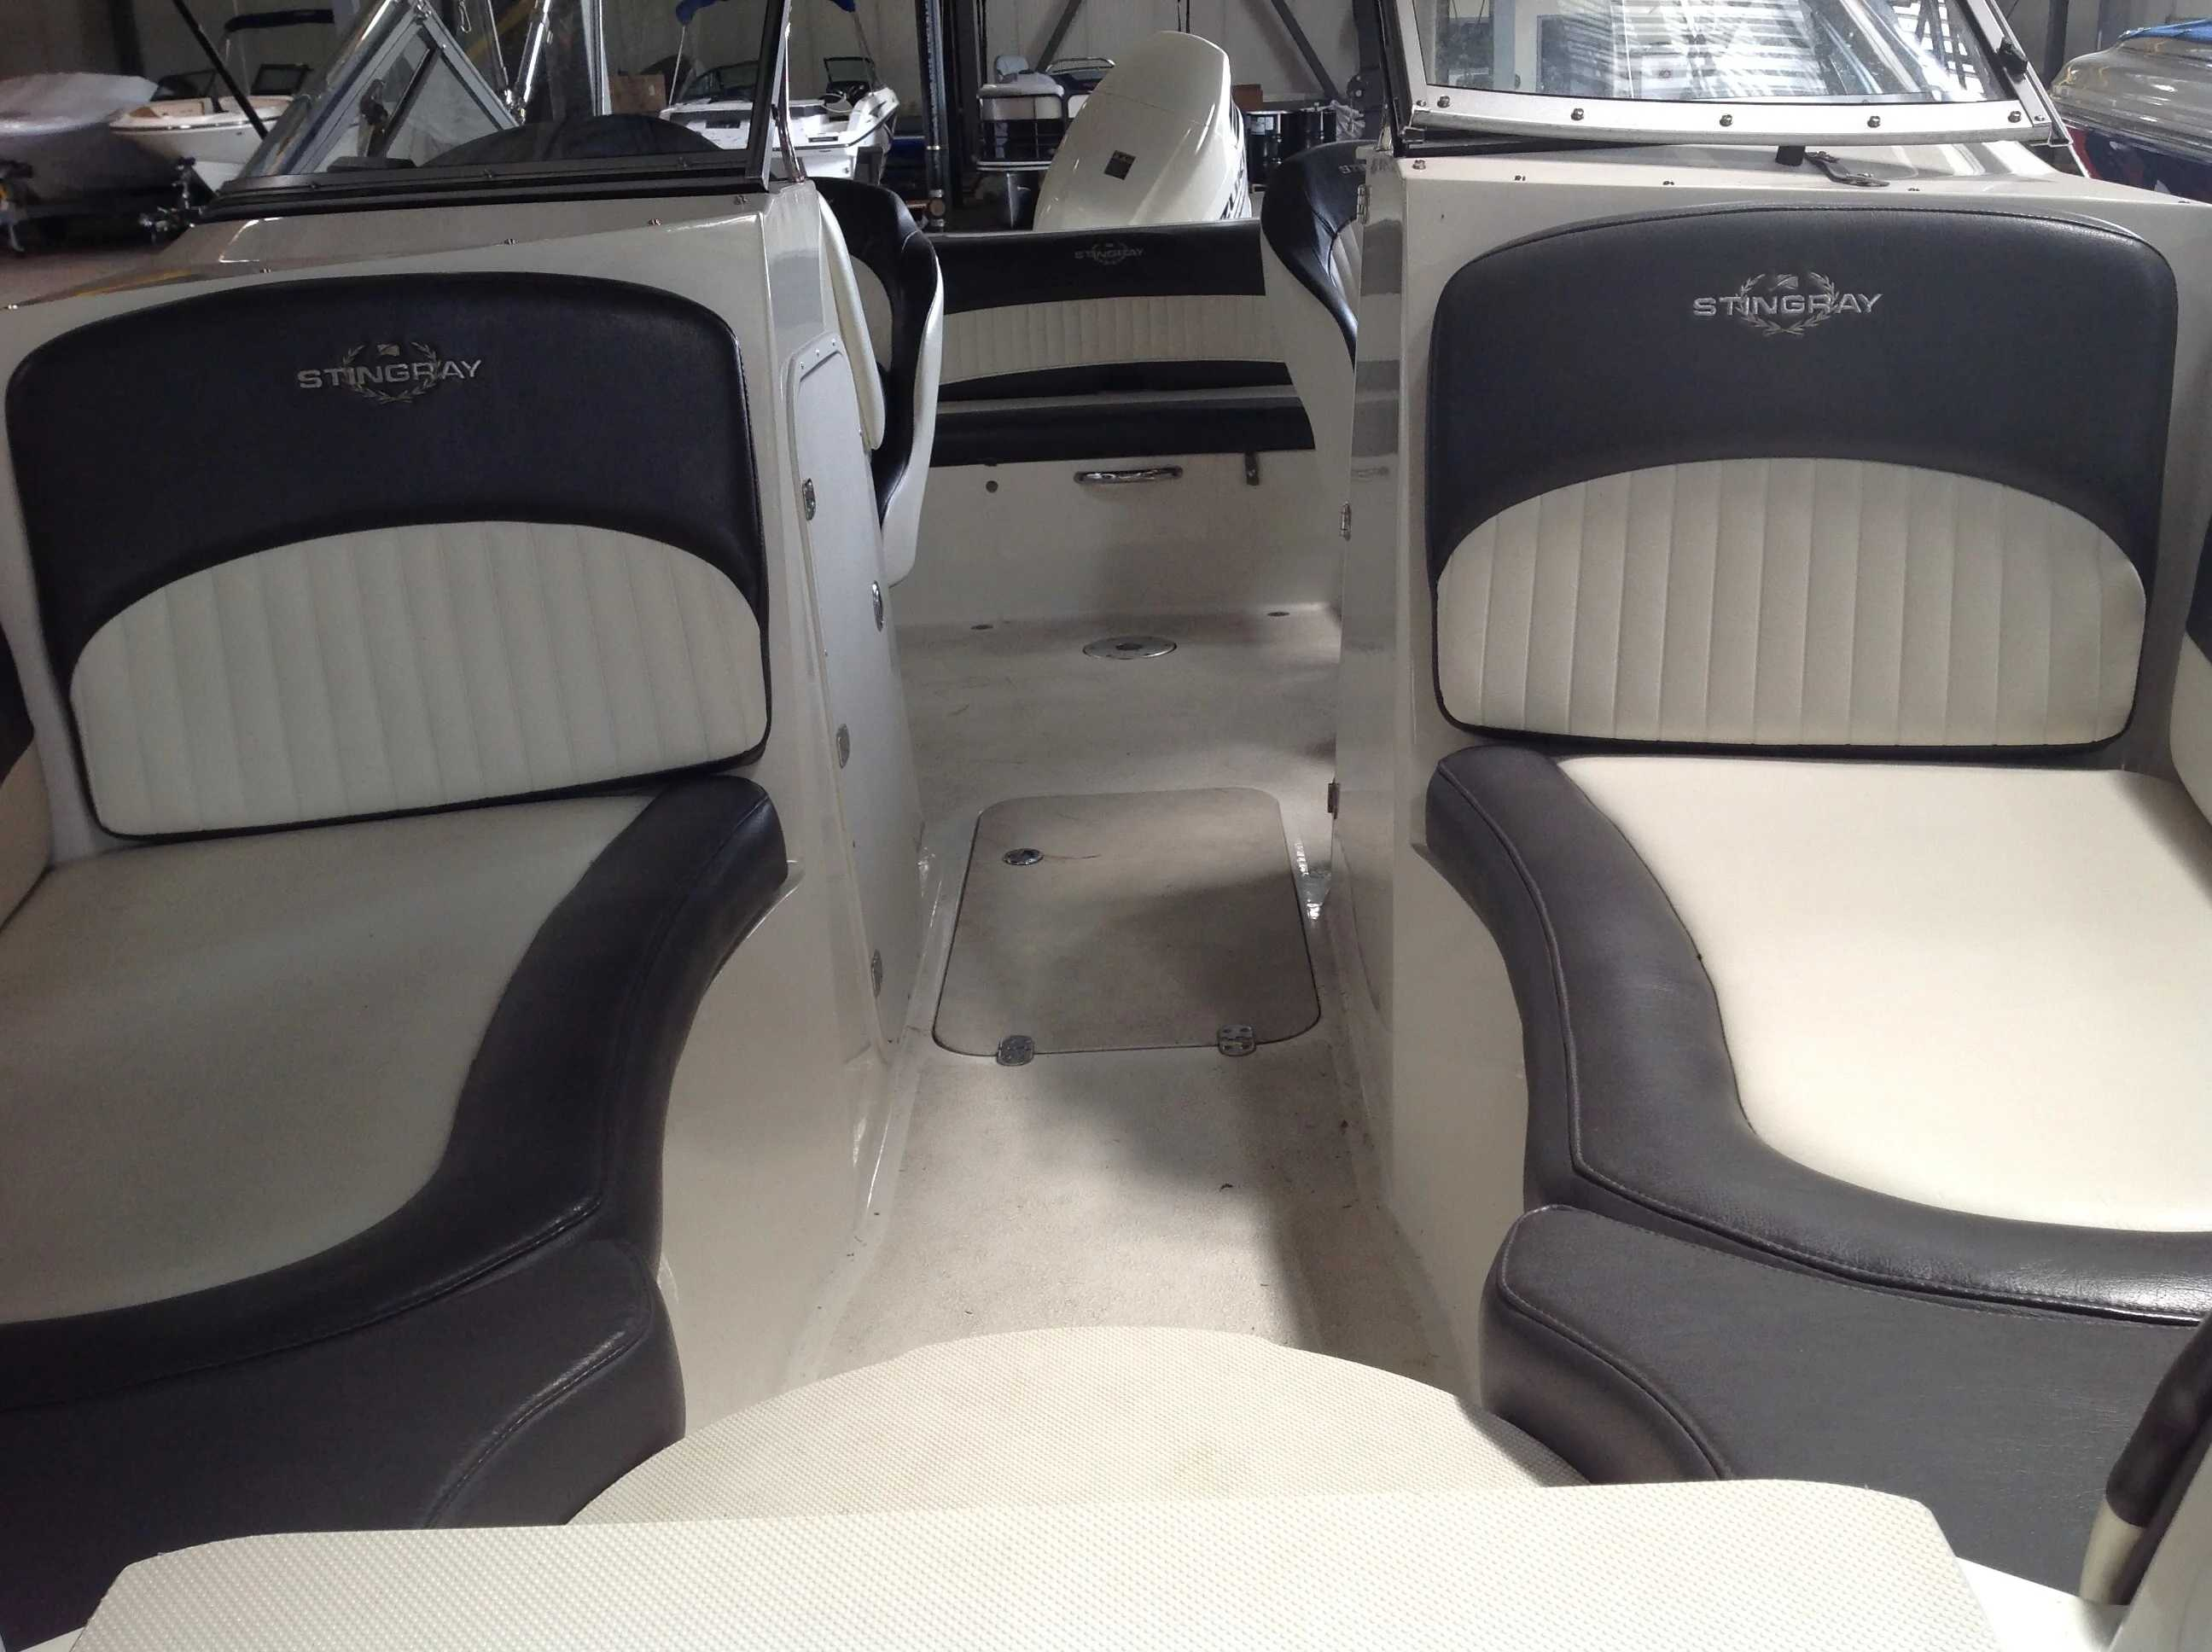 2017 Stingray boat for sale, model of the boat is 214LR & Image # 4 of 15